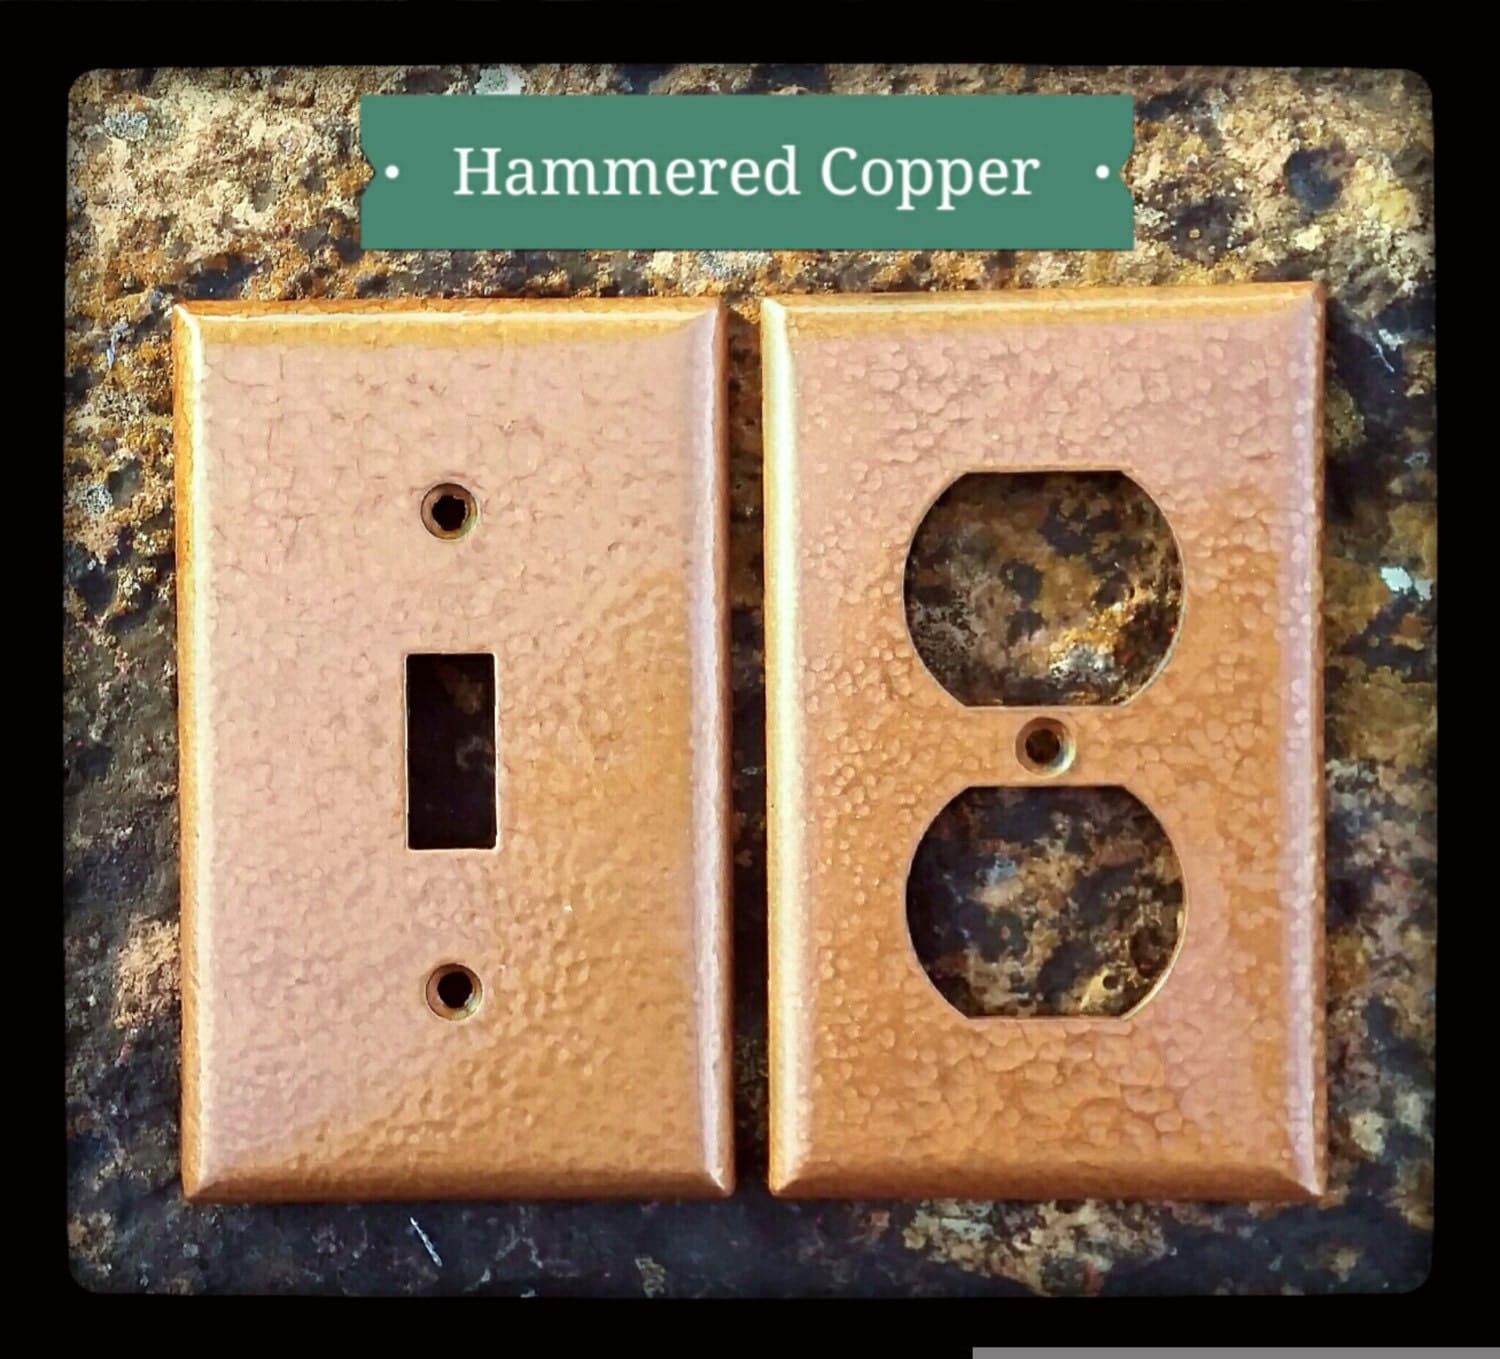 Copper Light Switch Plates Hammered Copper Wall Plates Switch Outlet By Thebarkinggoose